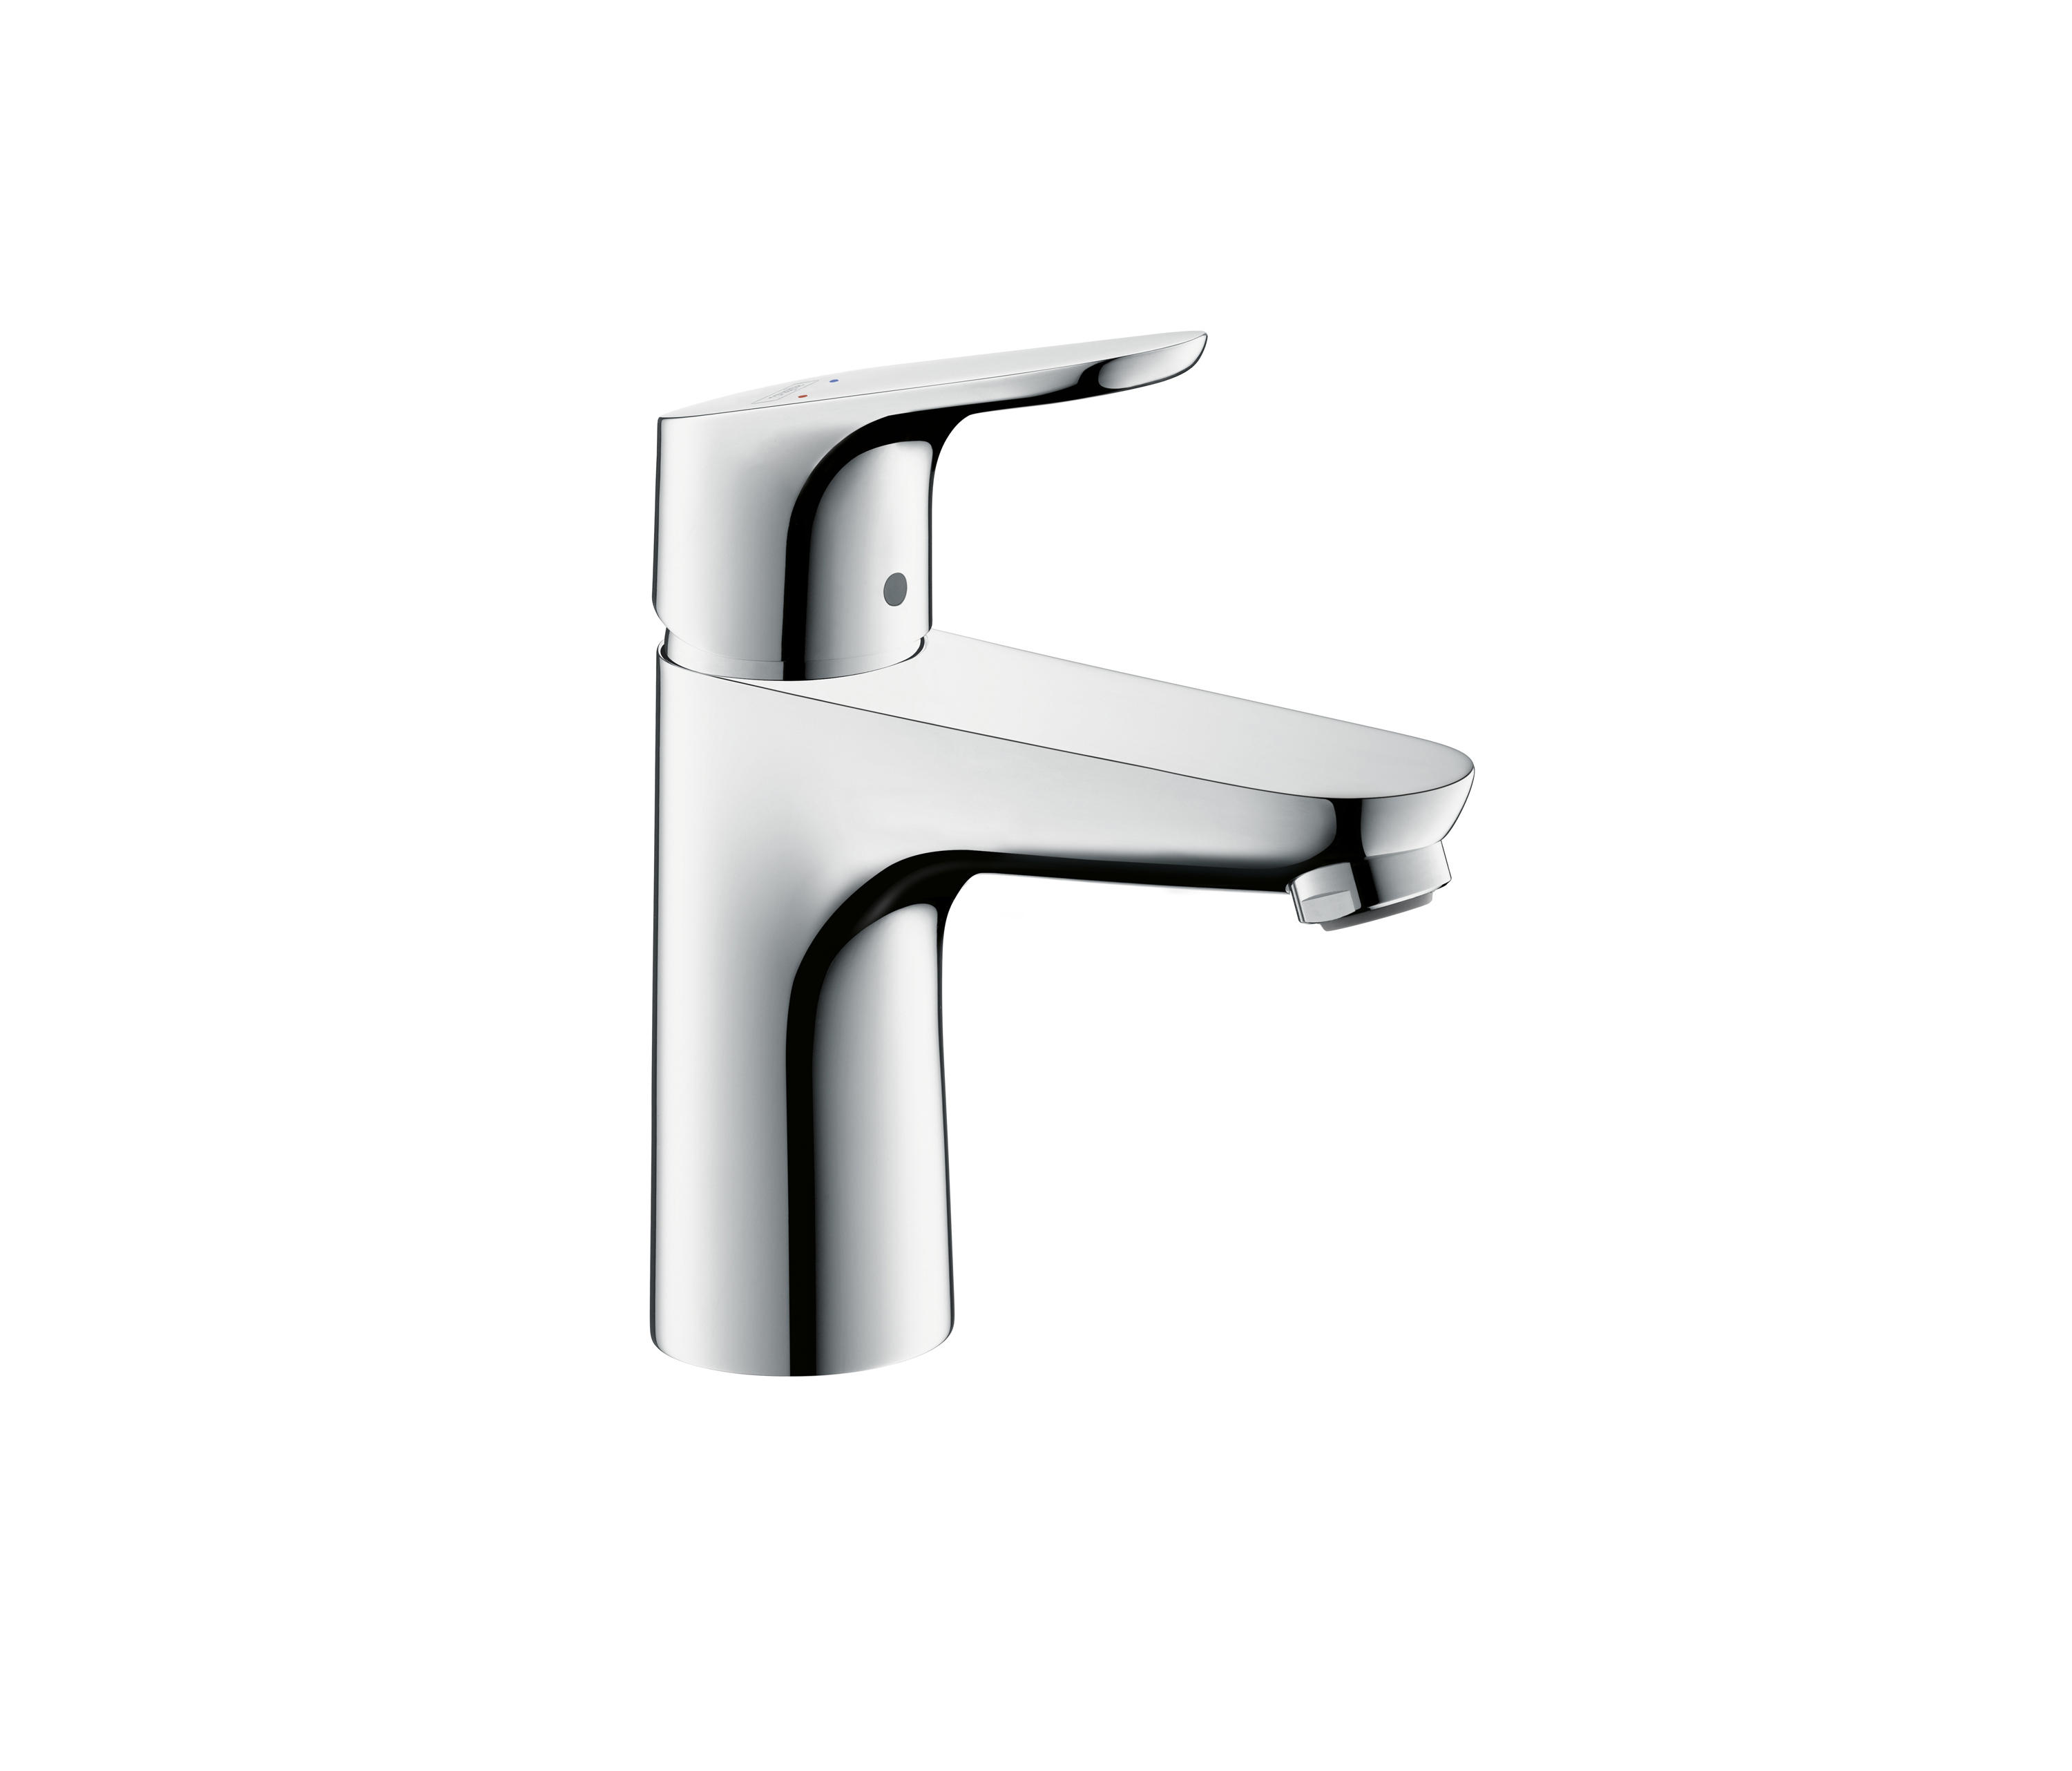 hansgrohe focus e 3 hole rim mounted bath mixer dn15 robinetterie pour baignoire de hansgrohe. Black Bedroom Furniture Sets. Home Design Ideas